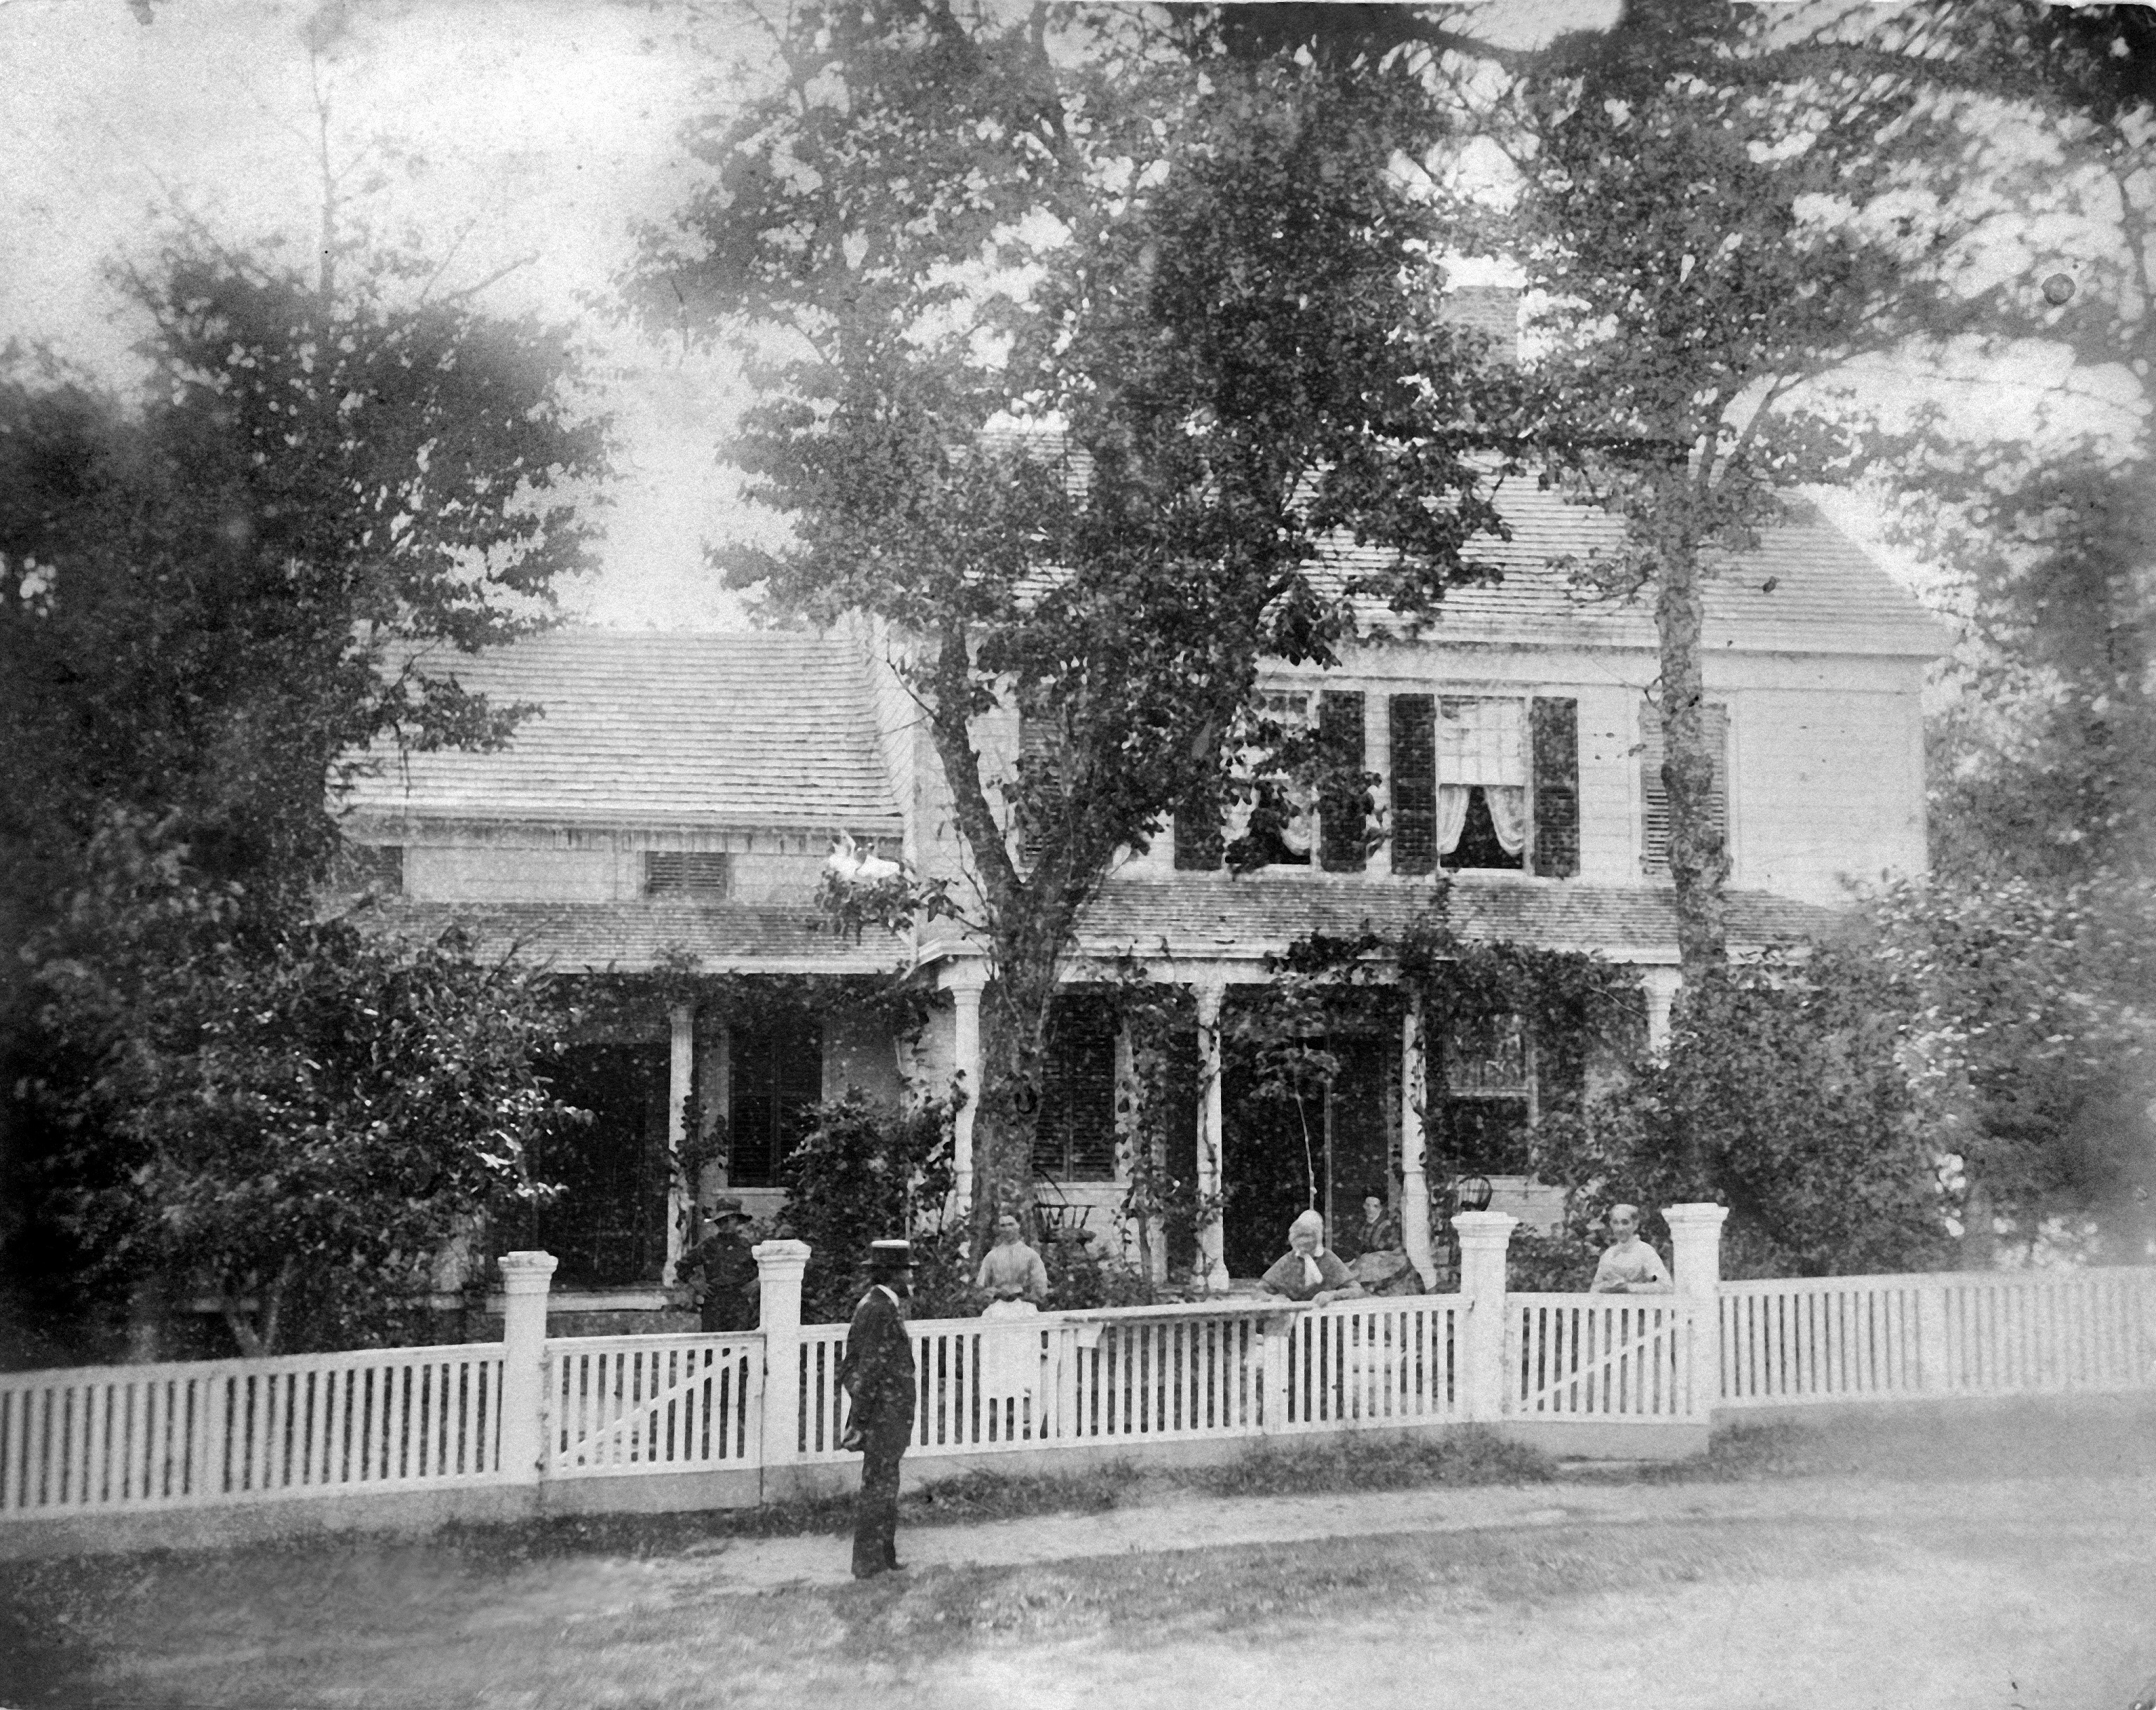 The Homestead in the 1860s